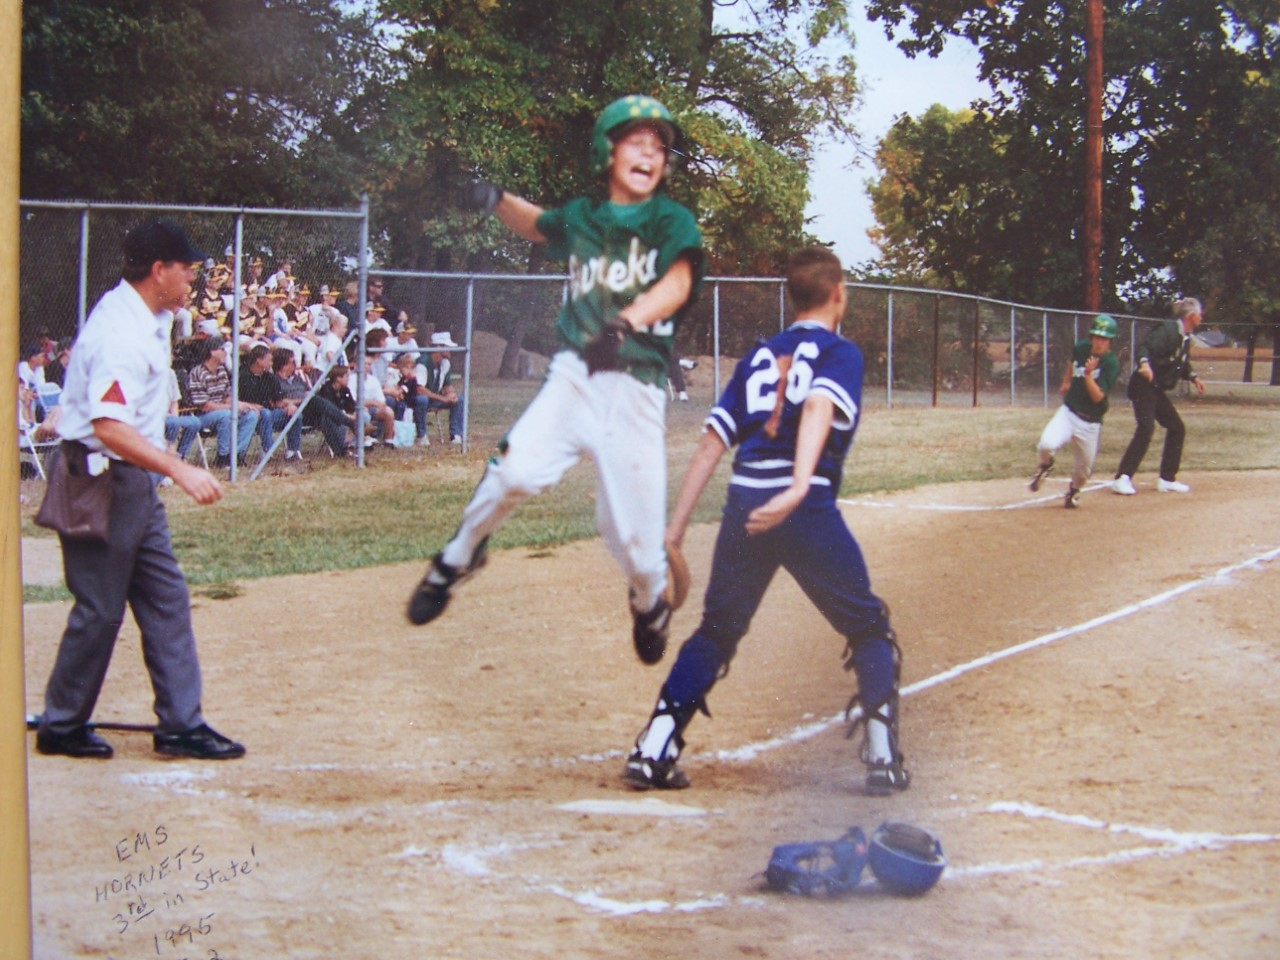 2cdc57dbf07 A young Ben Zobrist heads for home plate as a youth league baseball player  for Eureka